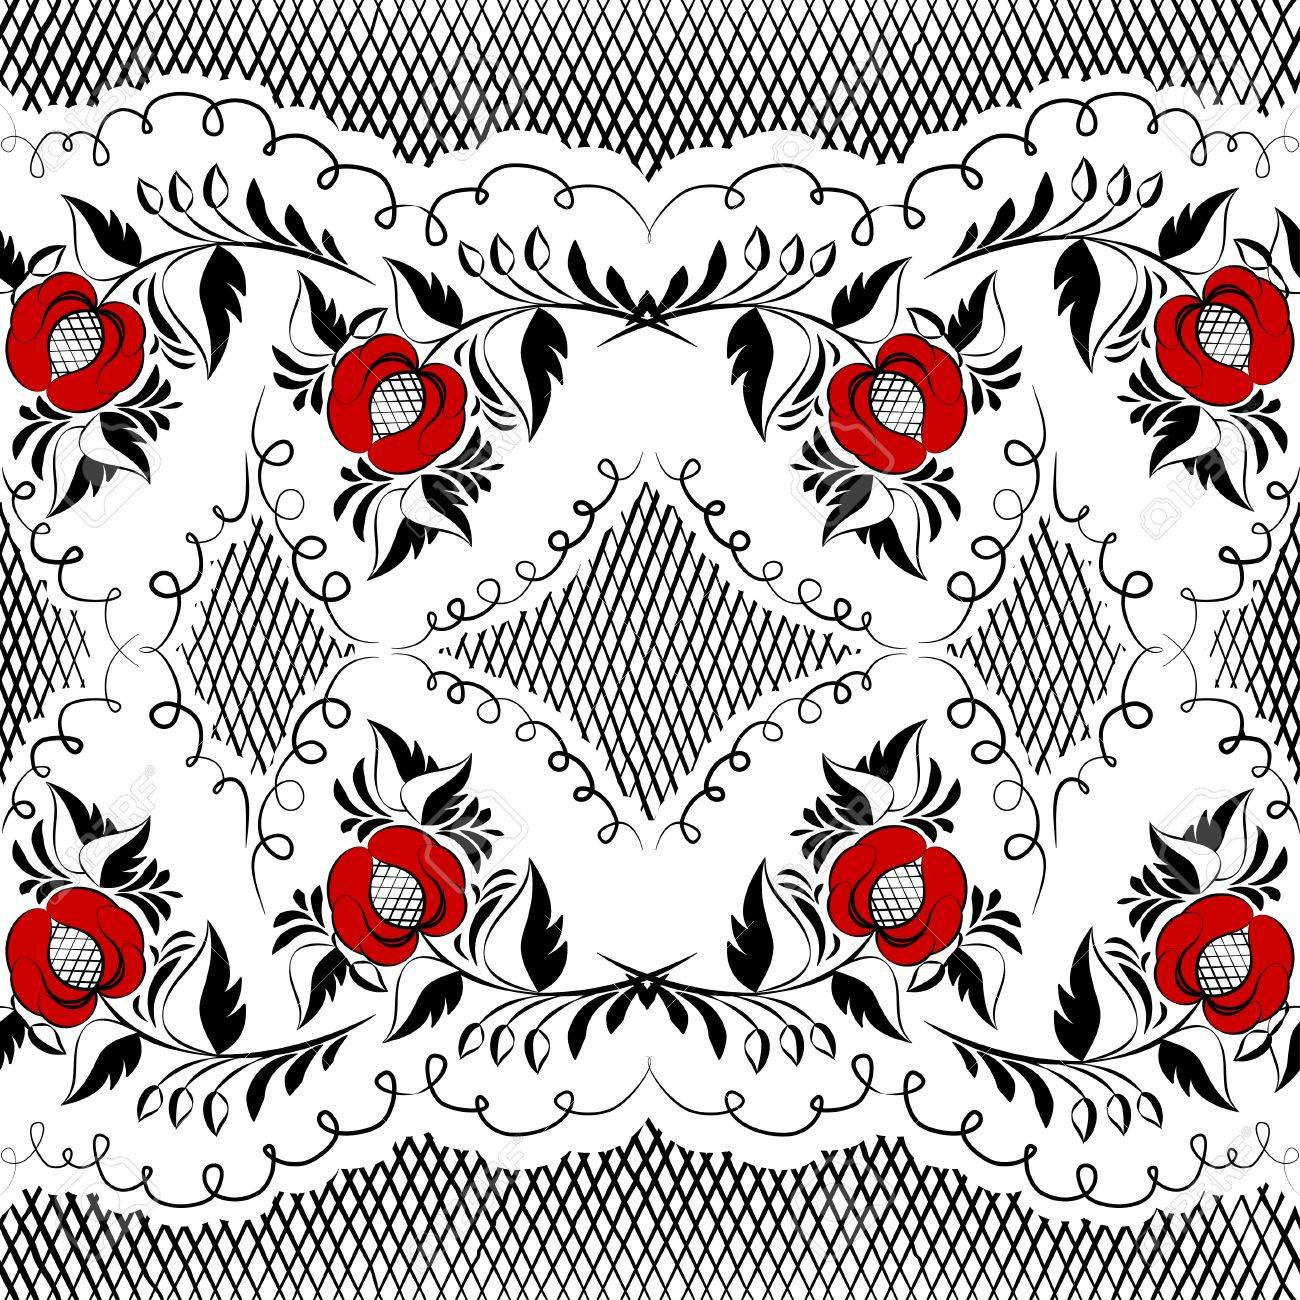 Seamless Floral Pattern In Black And White With Red Flowers